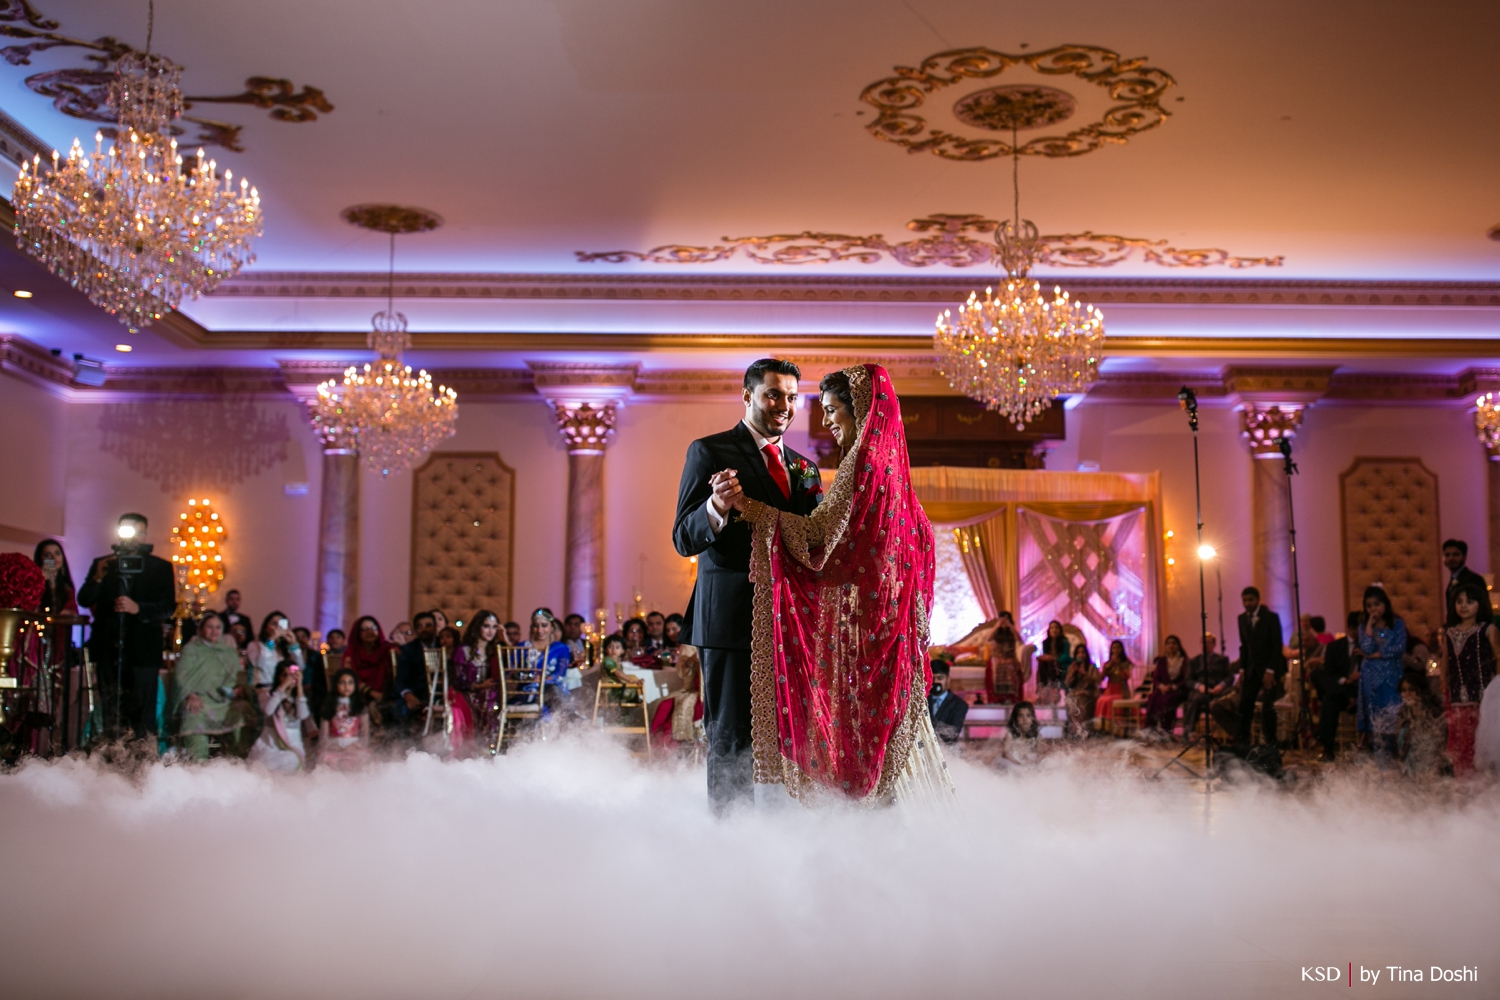 nj_south_asian_wedding_0132